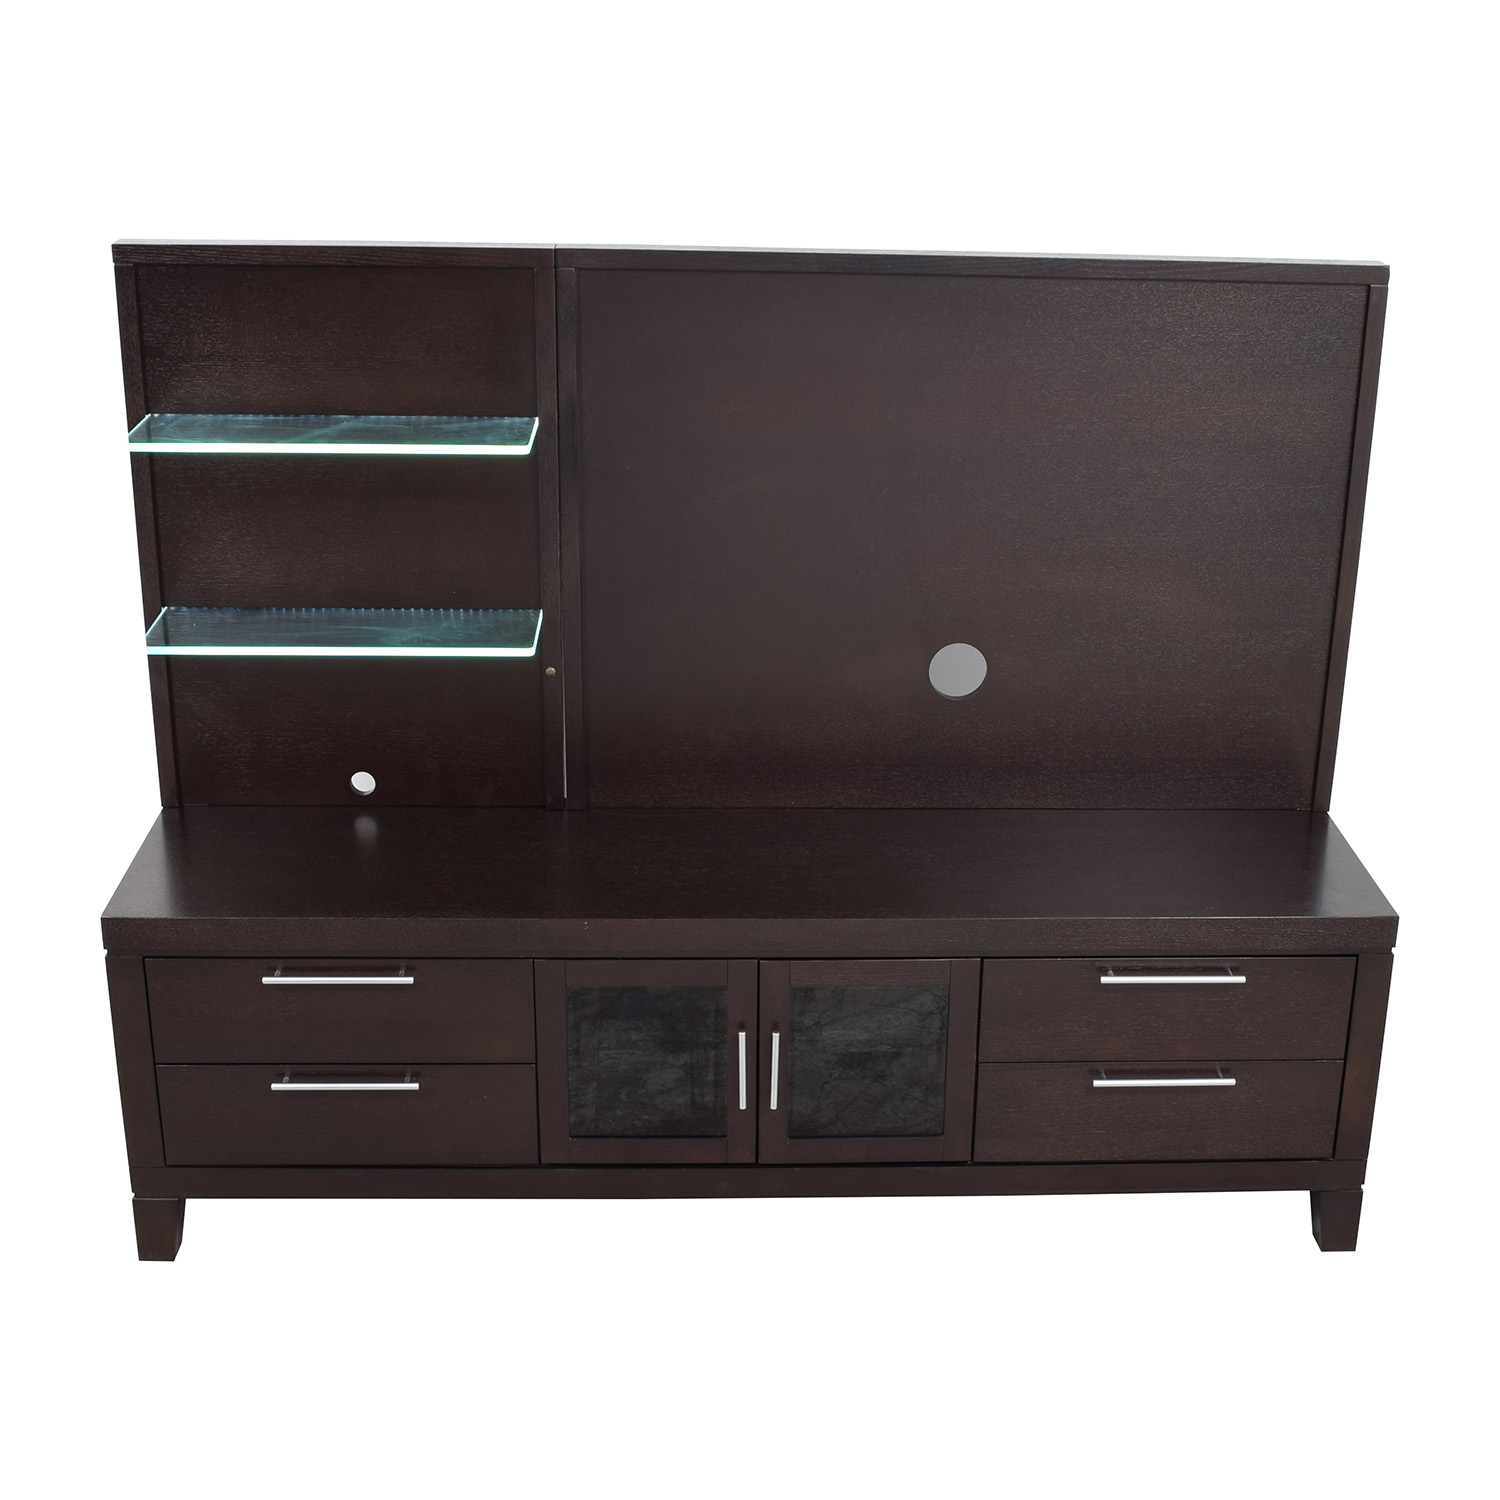 Raymour and Flanigan Raymour and Flanigan Entertainment Center with Open Glass Shelves used